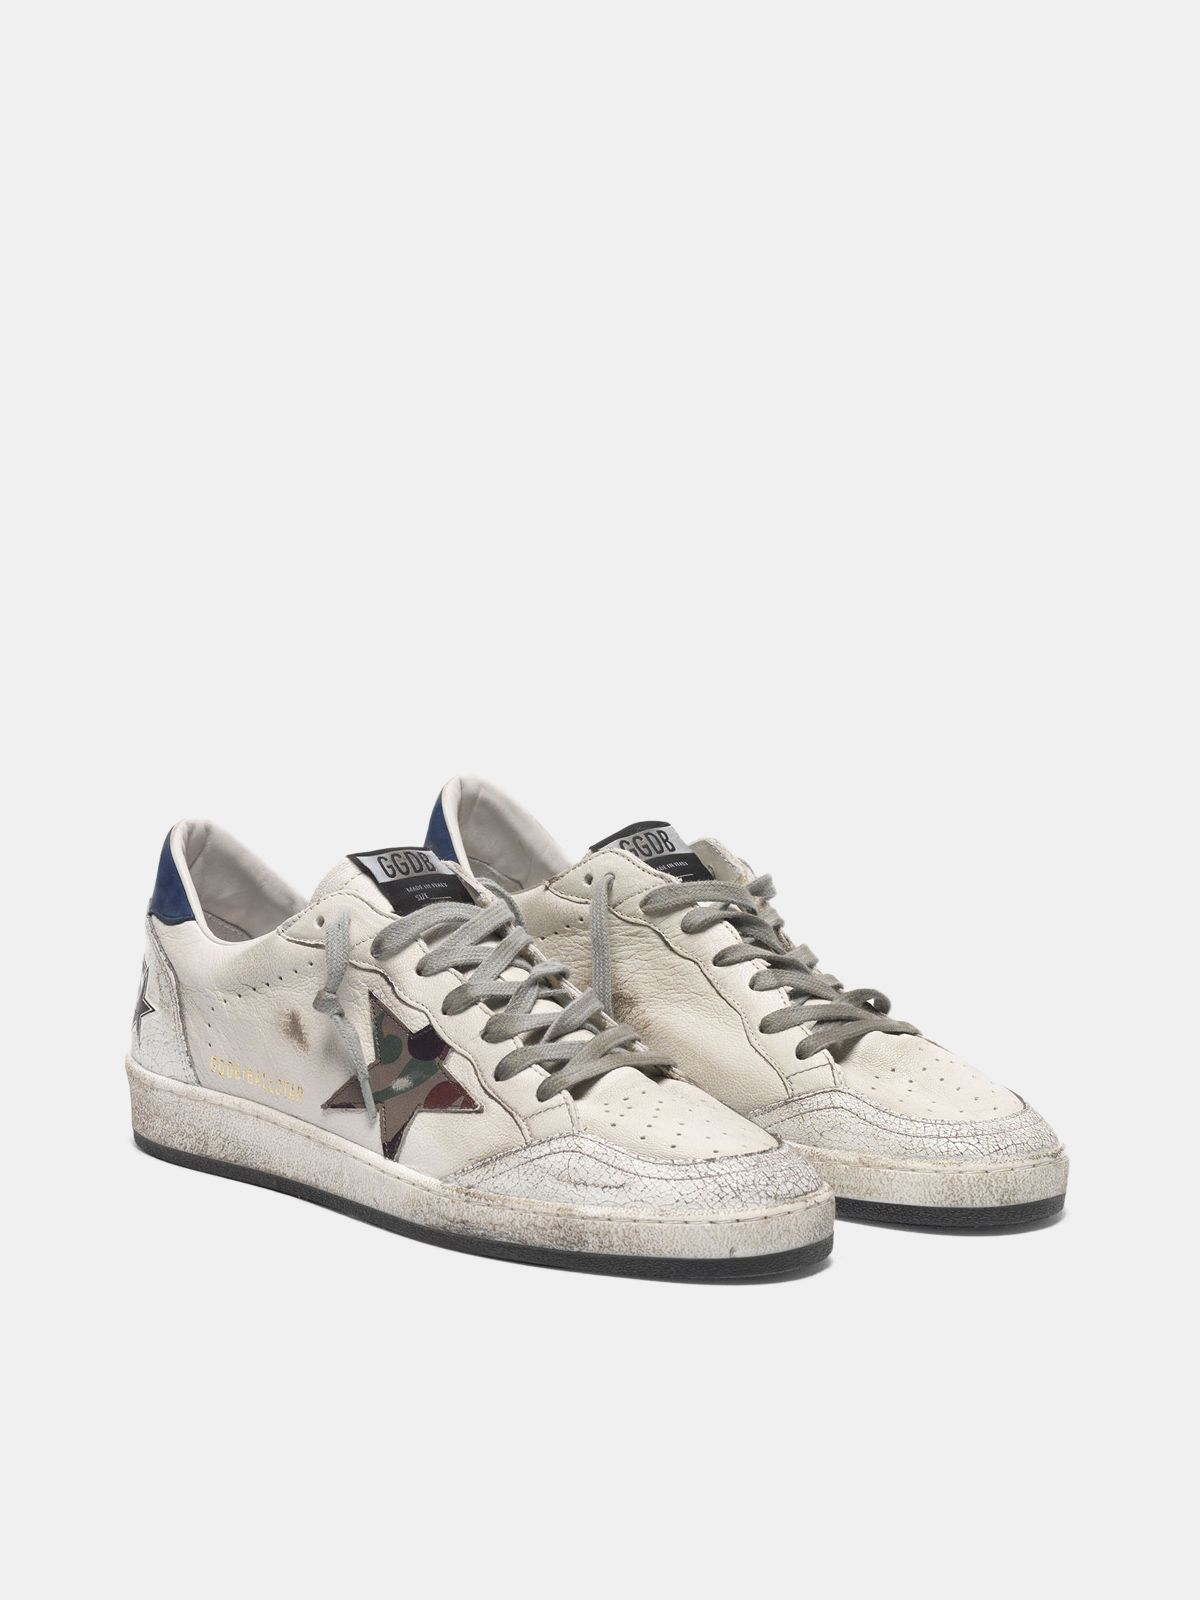 Golden Goose - Ball Star sneakers with camouflage star and navy heel tab in